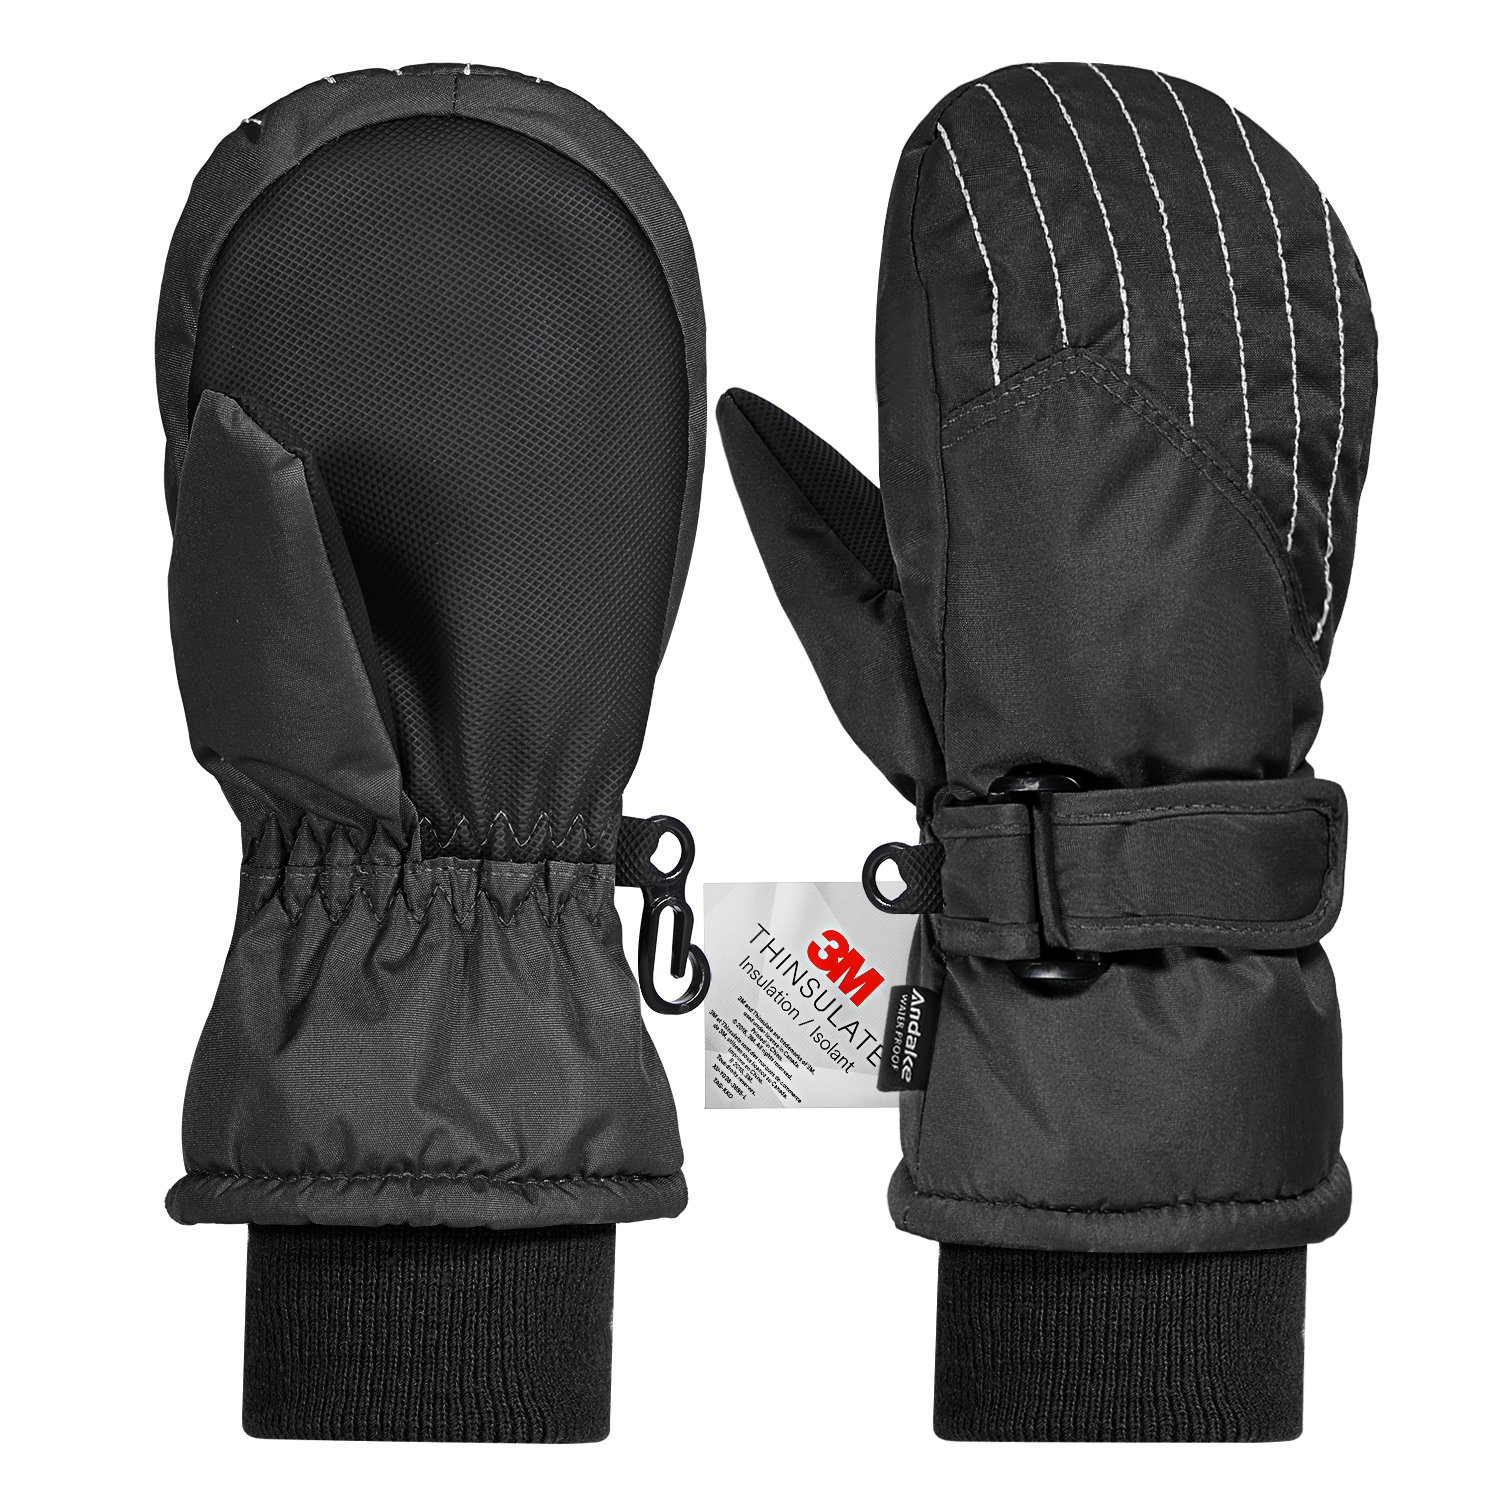 Andake Kids Mittens, Snowproof 3M Thinsulate Insulated Girls/Boys Winter Mittens, Gloves with Non-Slip PU Palms, Idea for Winter Sports, Black, 5-7y